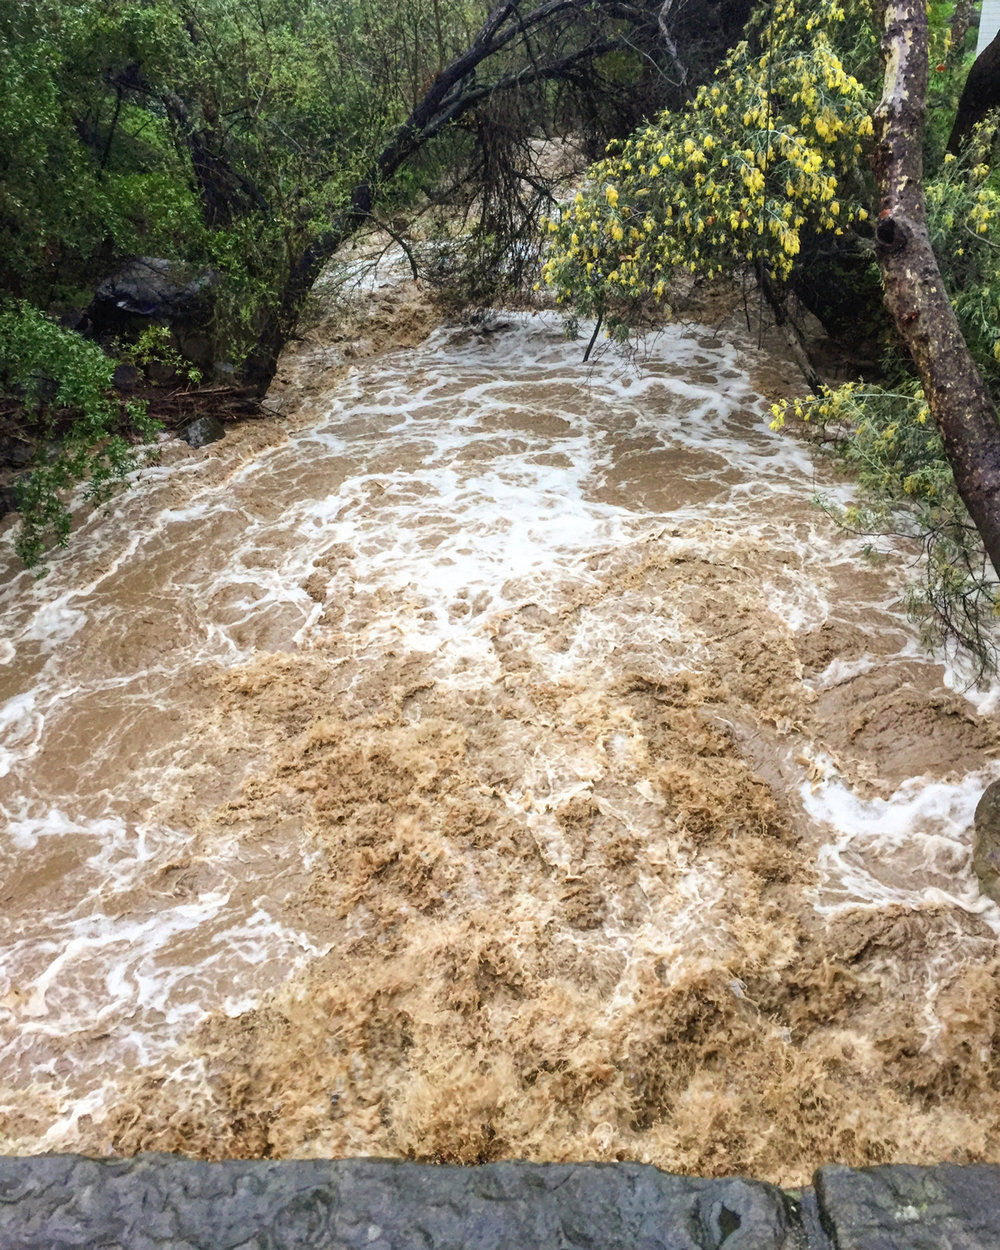 This stream turned into a raging river!